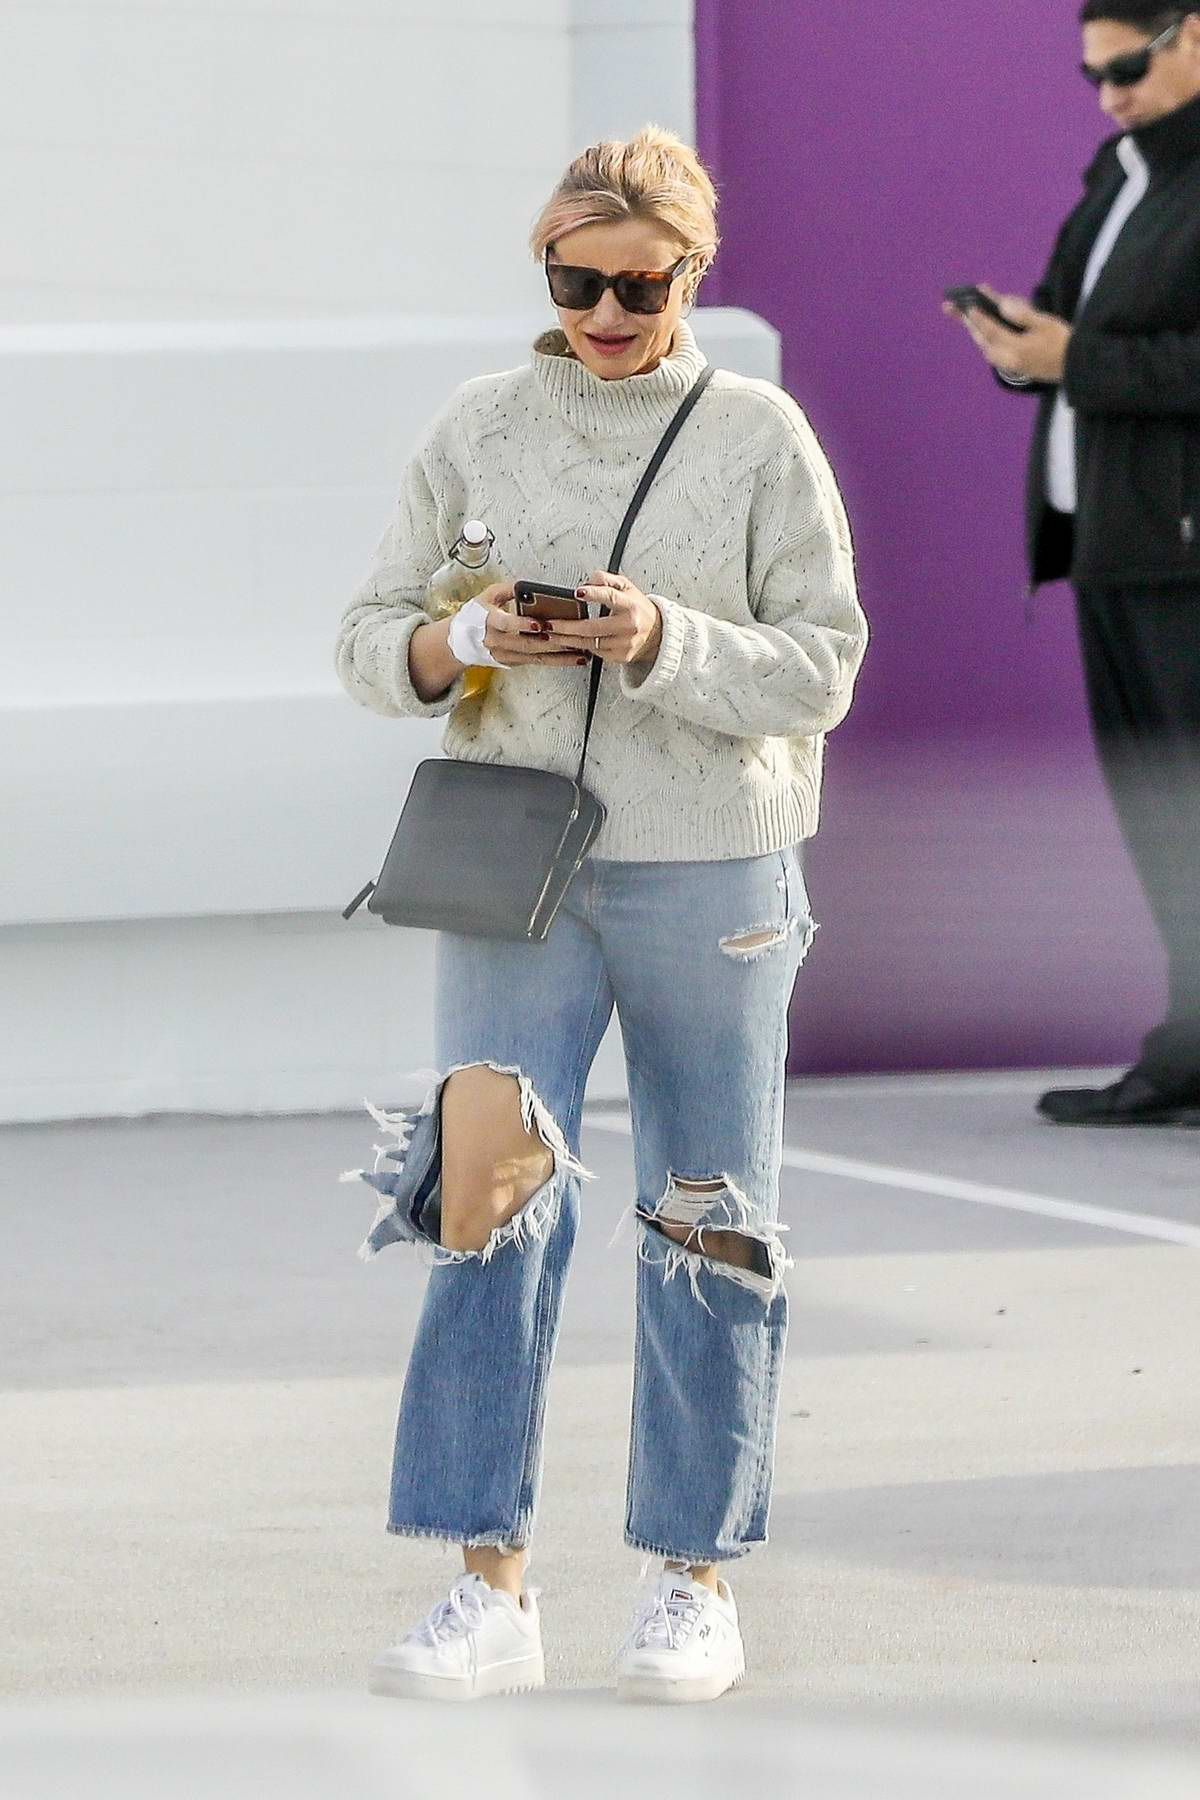 Cameron Diaz spotted as she leaves after a medical check-up in Santa Monica, California